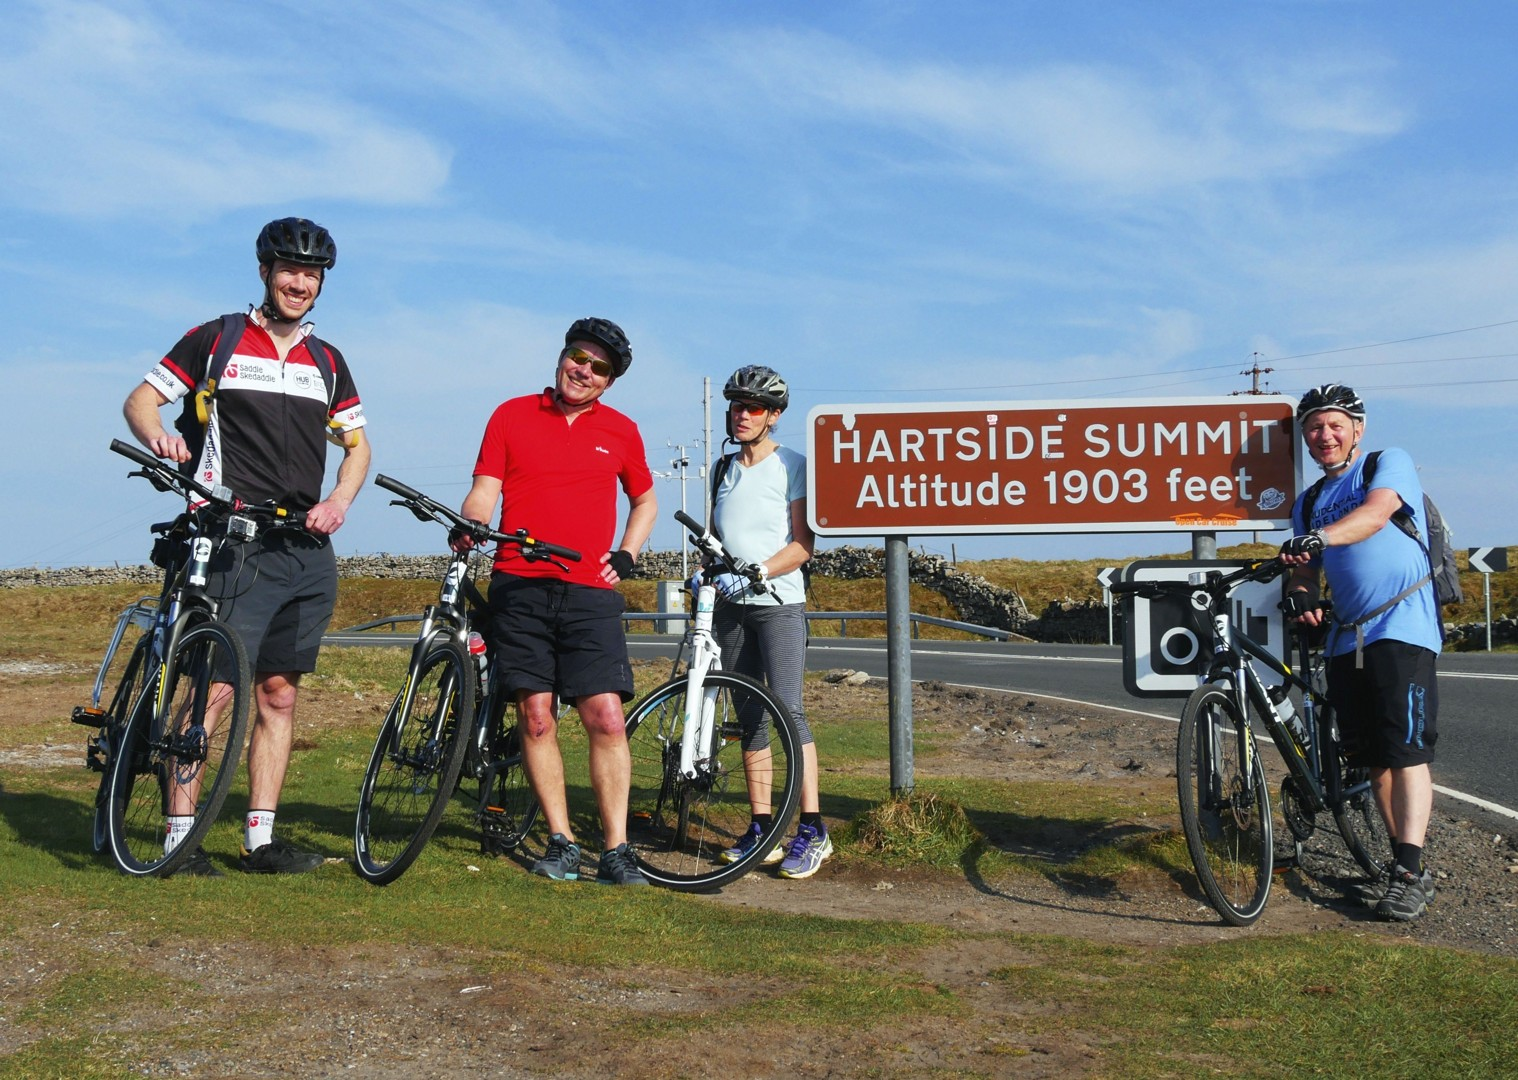 cycling-holiday-c2c-landscape-summit.jpg - UK - C2C - Coast to Coast 5 Days Cycling - Self-Guided Leisure Cycling Holiday - Leisure Cycling